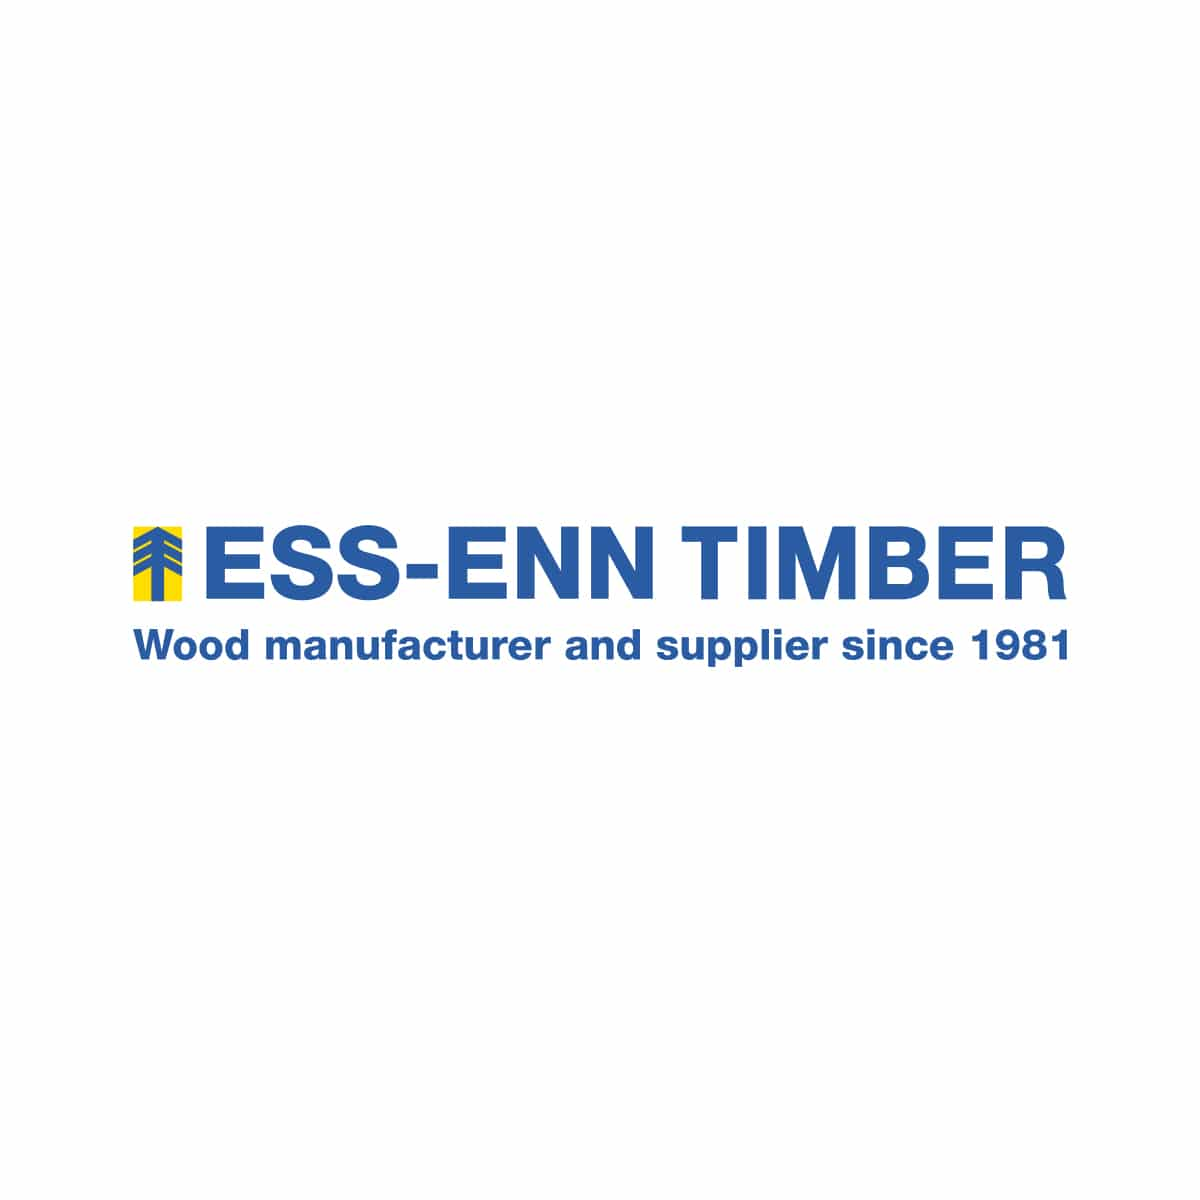 Ess-enn-timber